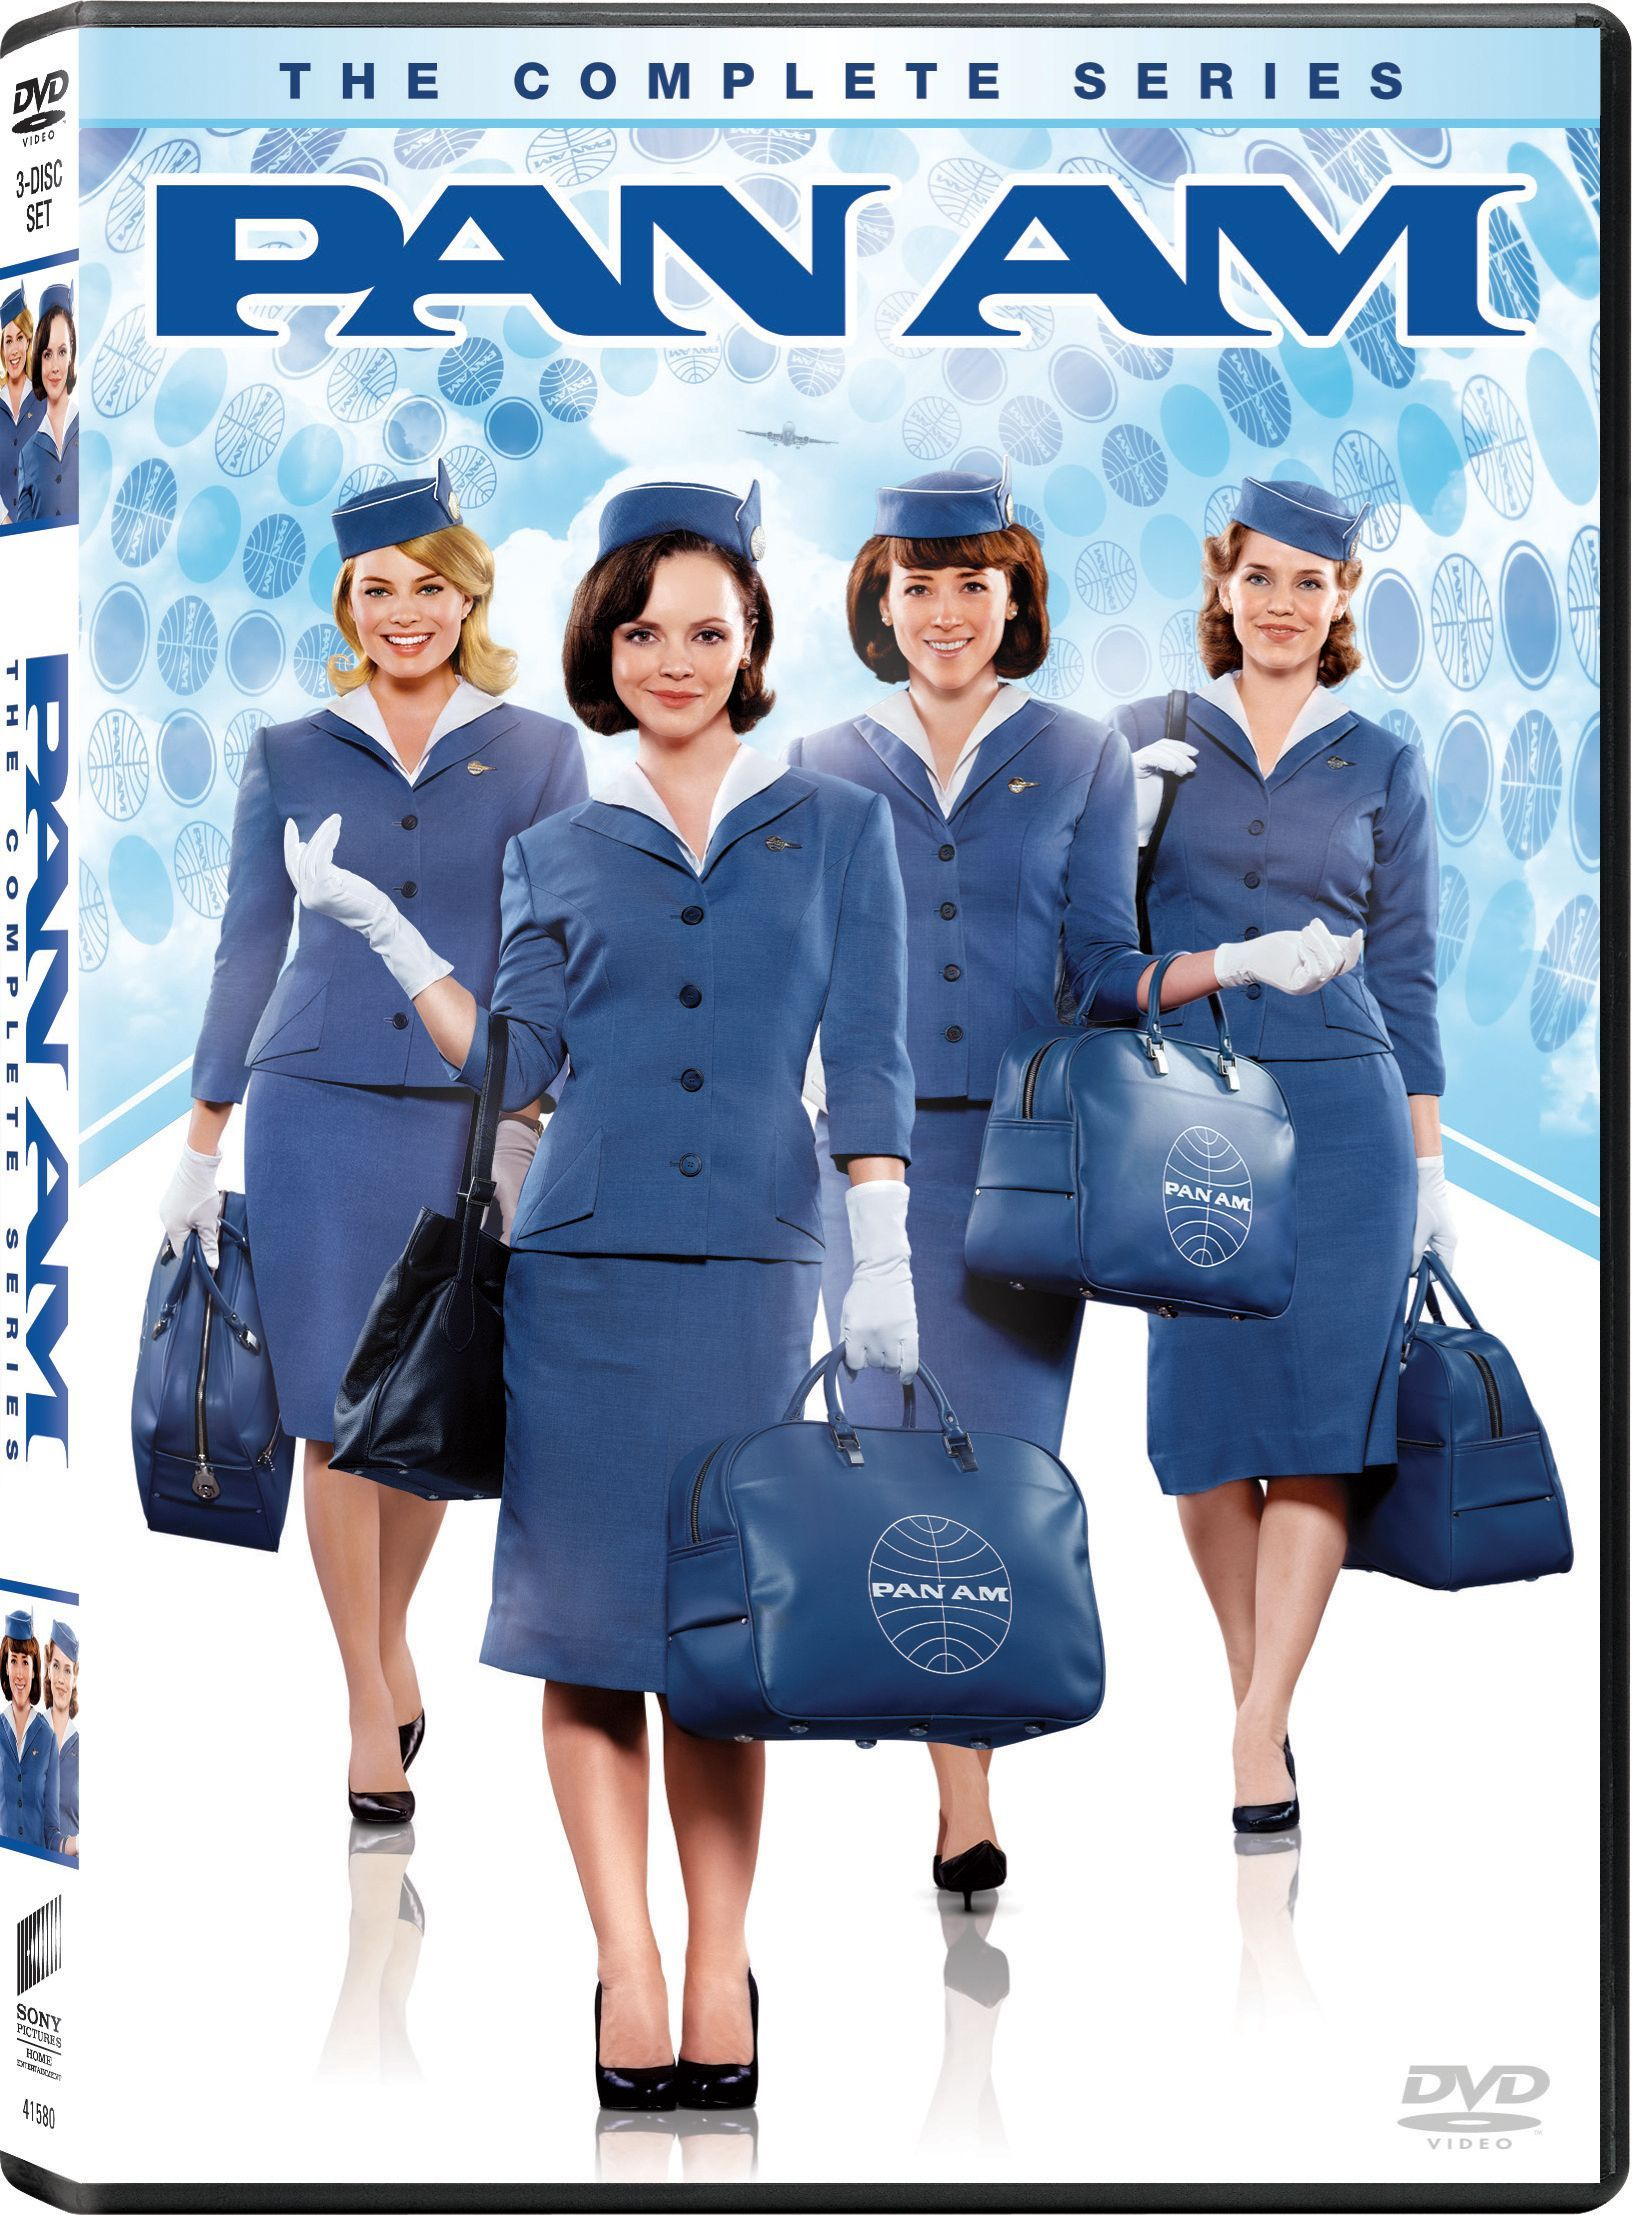 Pan Am The Complete First Season Dvd Overstock Com Shopping The Best Deals On General Amazones Egypte